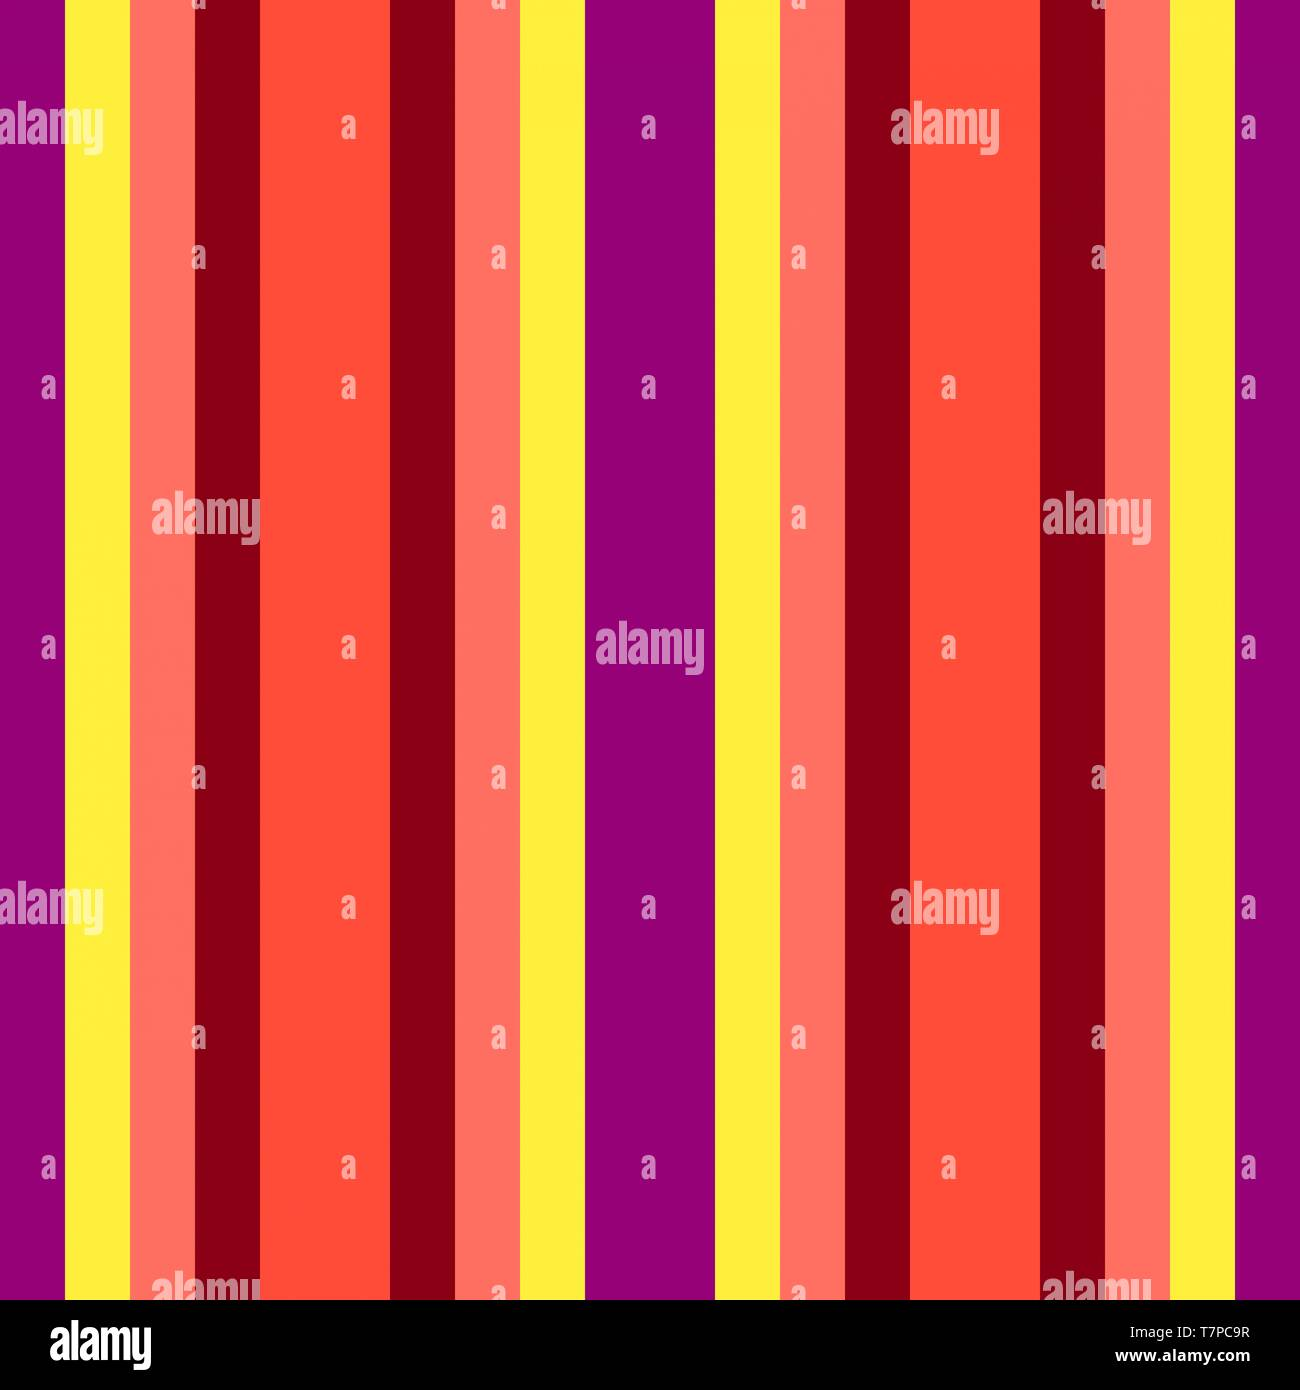 Yellow Maroon And Tomato Colored Vertical Lines Abstract